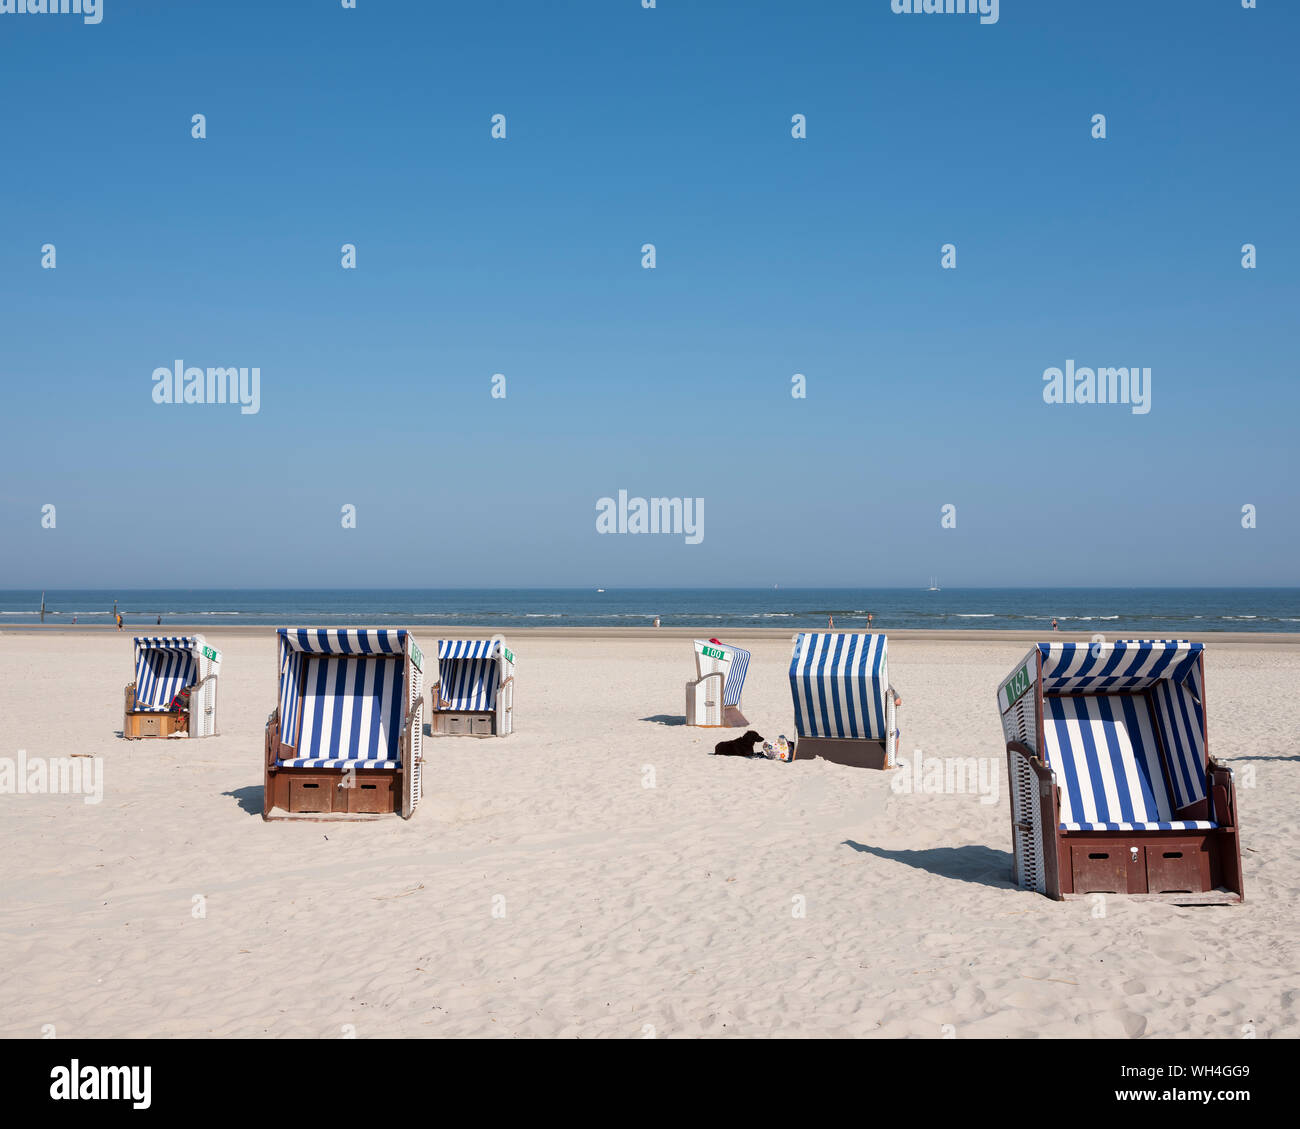 beach korbs on the island of norderney in germany on sunny day Stock Photo